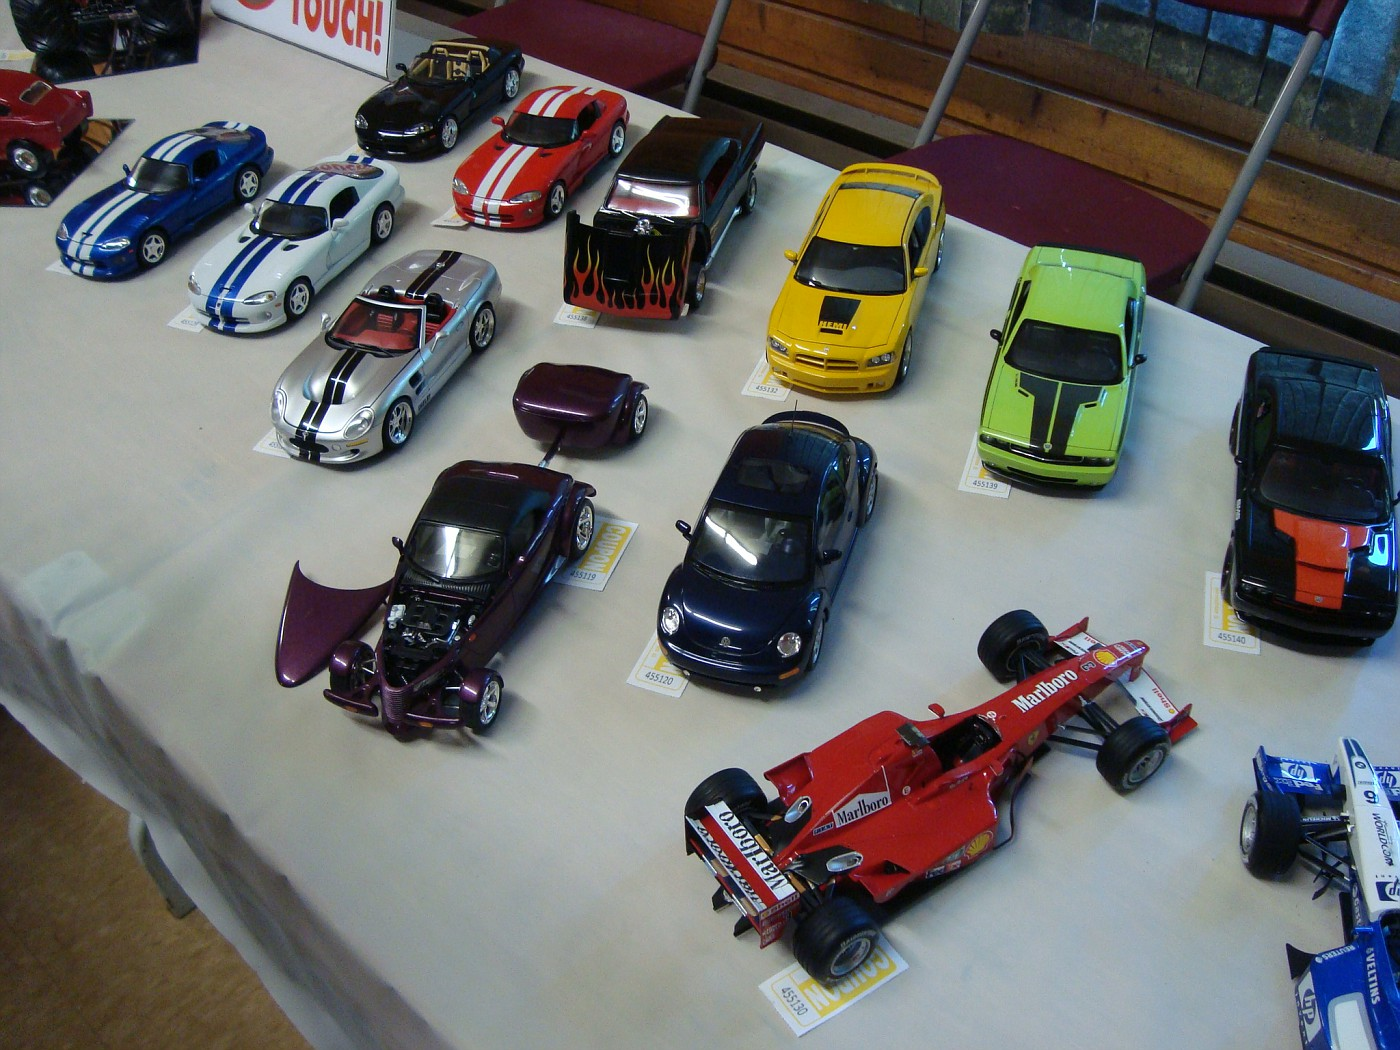 2013 Atlantic National Model Car Show 209-vi